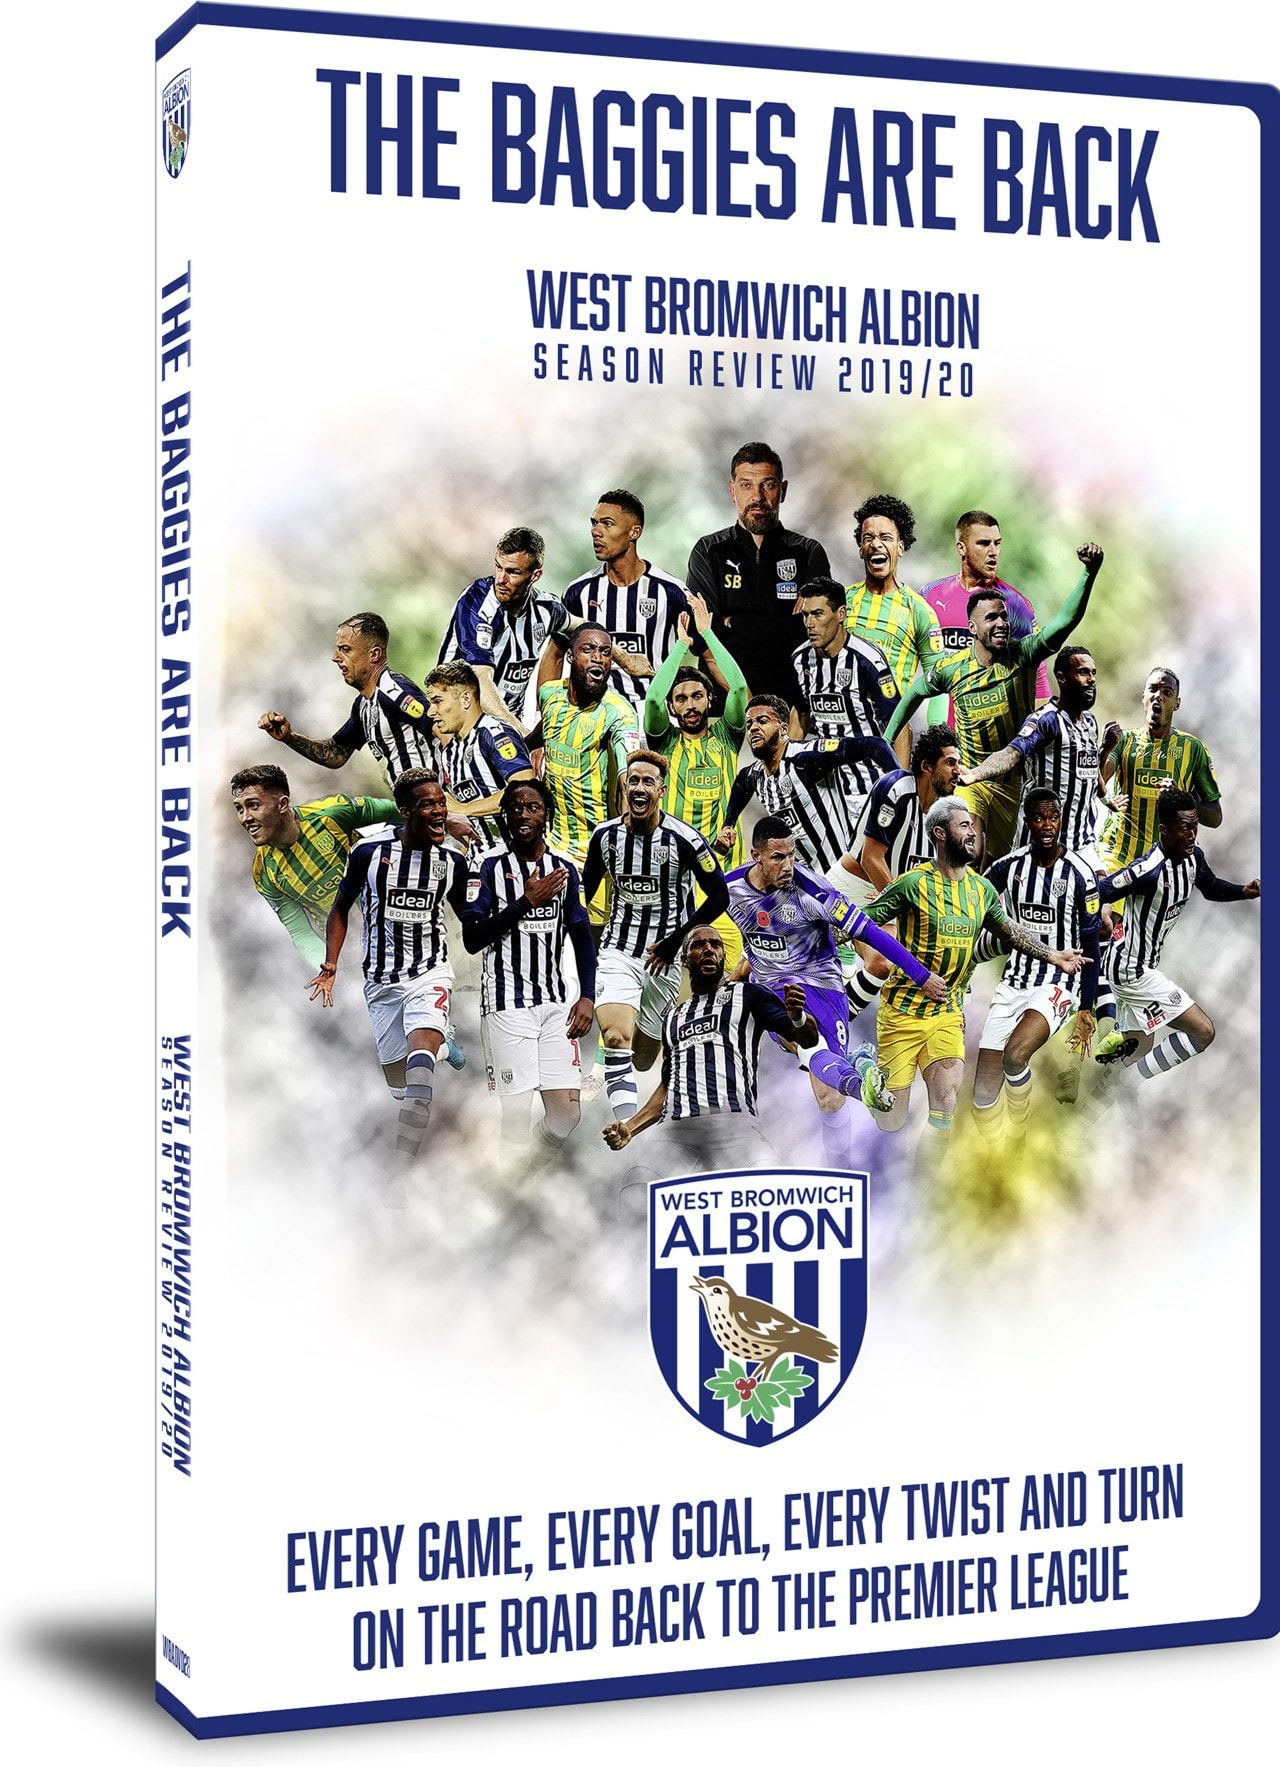 The Baggies Are Back - West Bromwich Albion Season Review 2019/20 - 2